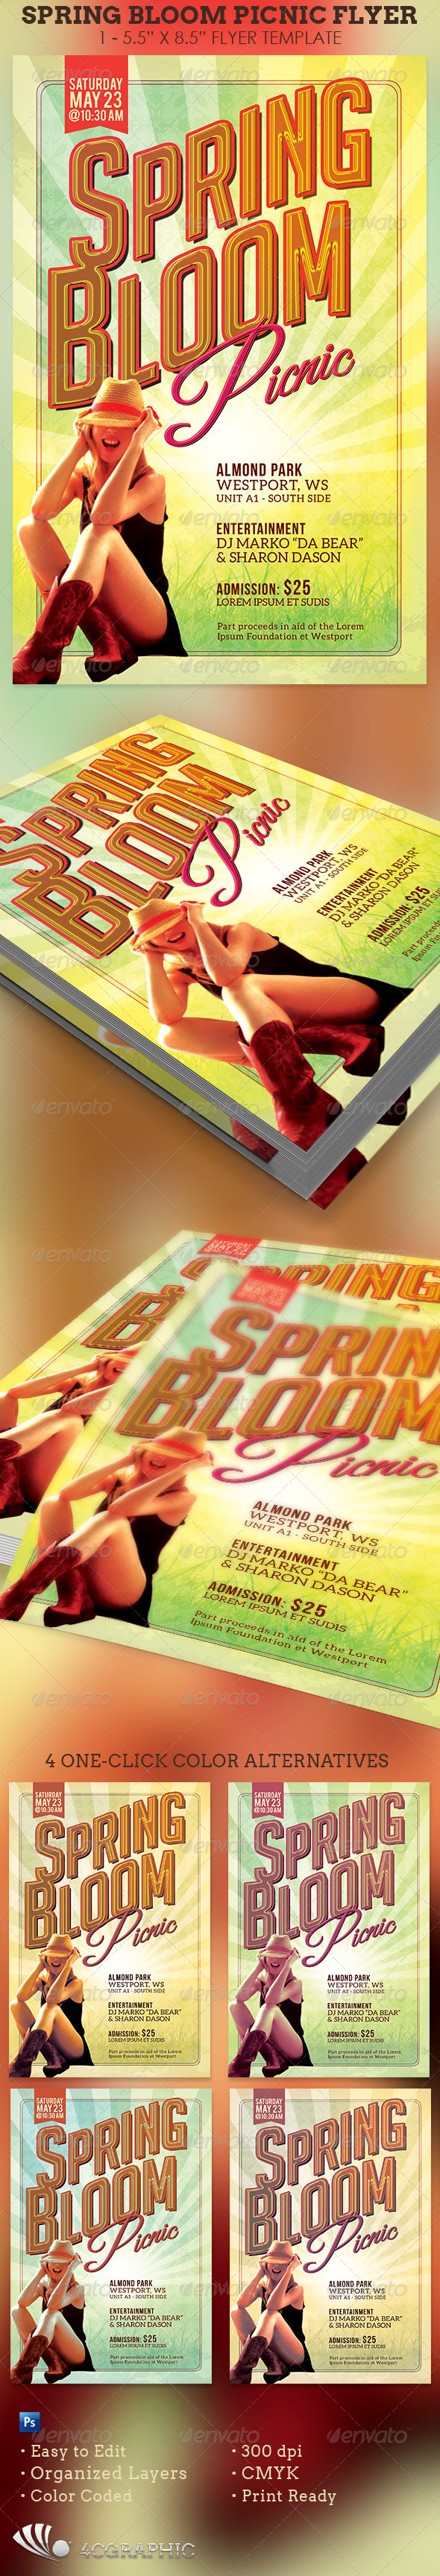 GraphicRiver Spring Bloom Picnic Flyer Template 7641605